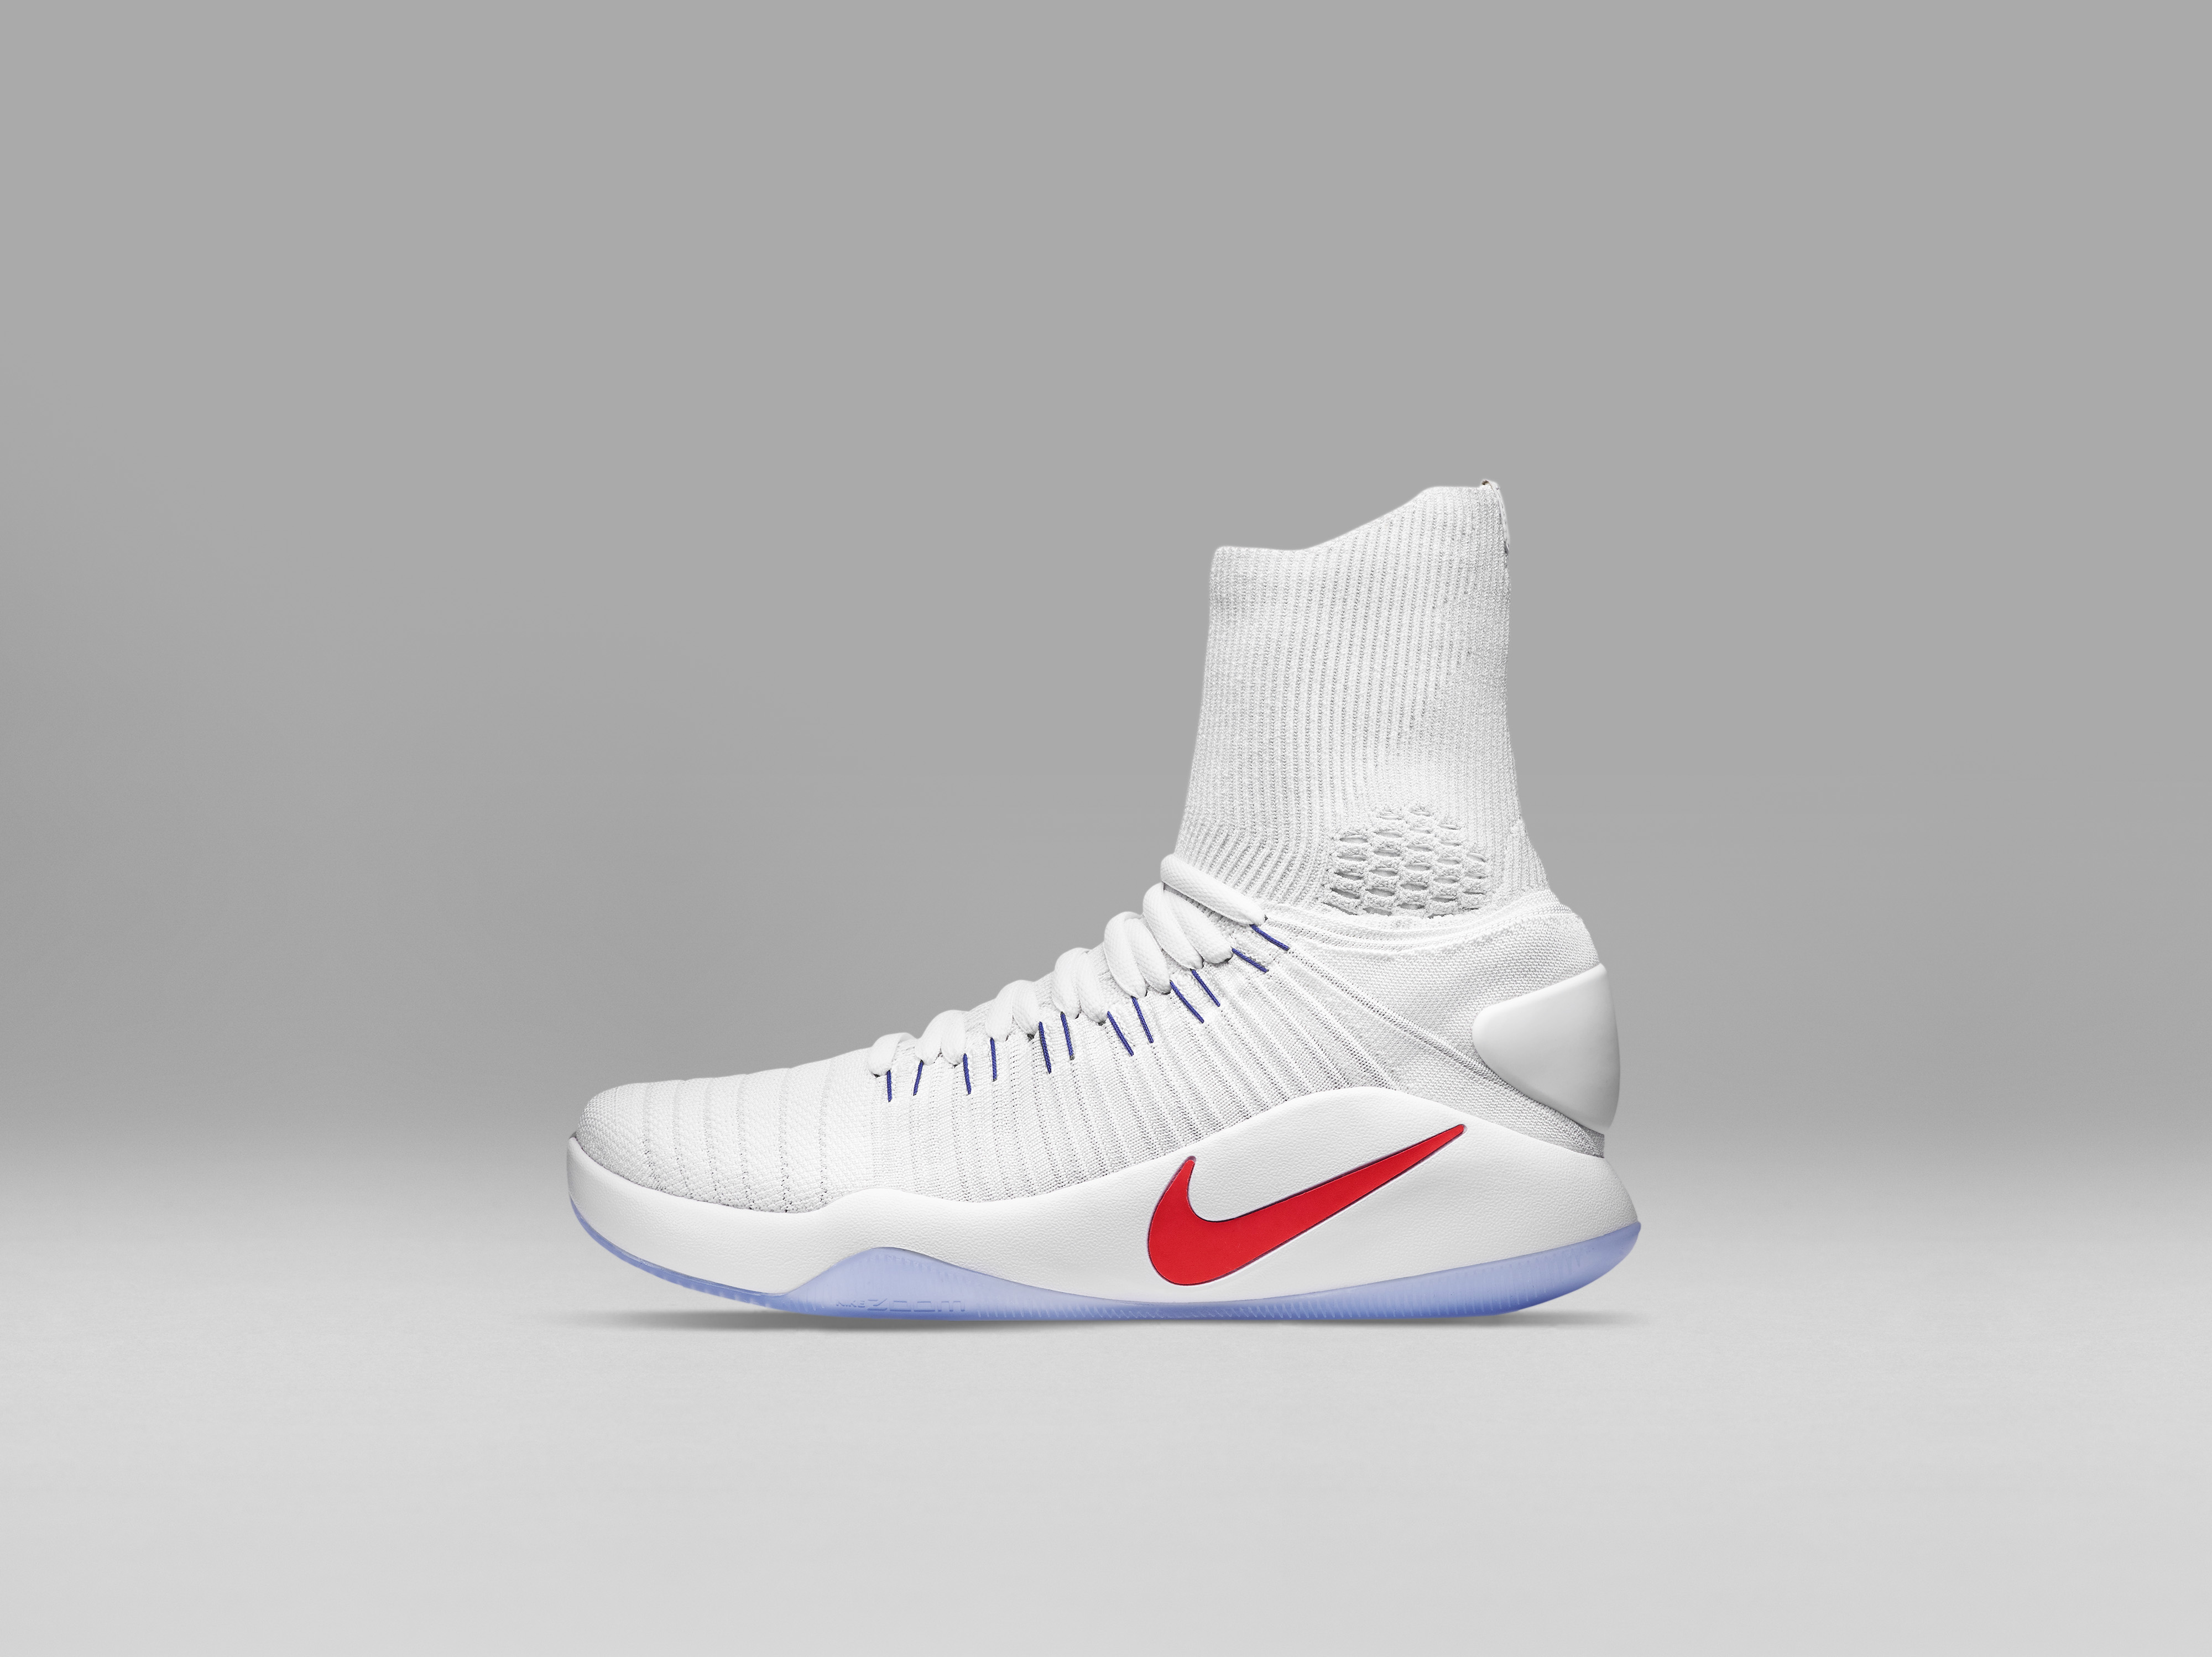 Nike News  Nike Hyperdunk 2016 Exemplifies Performance Innovation